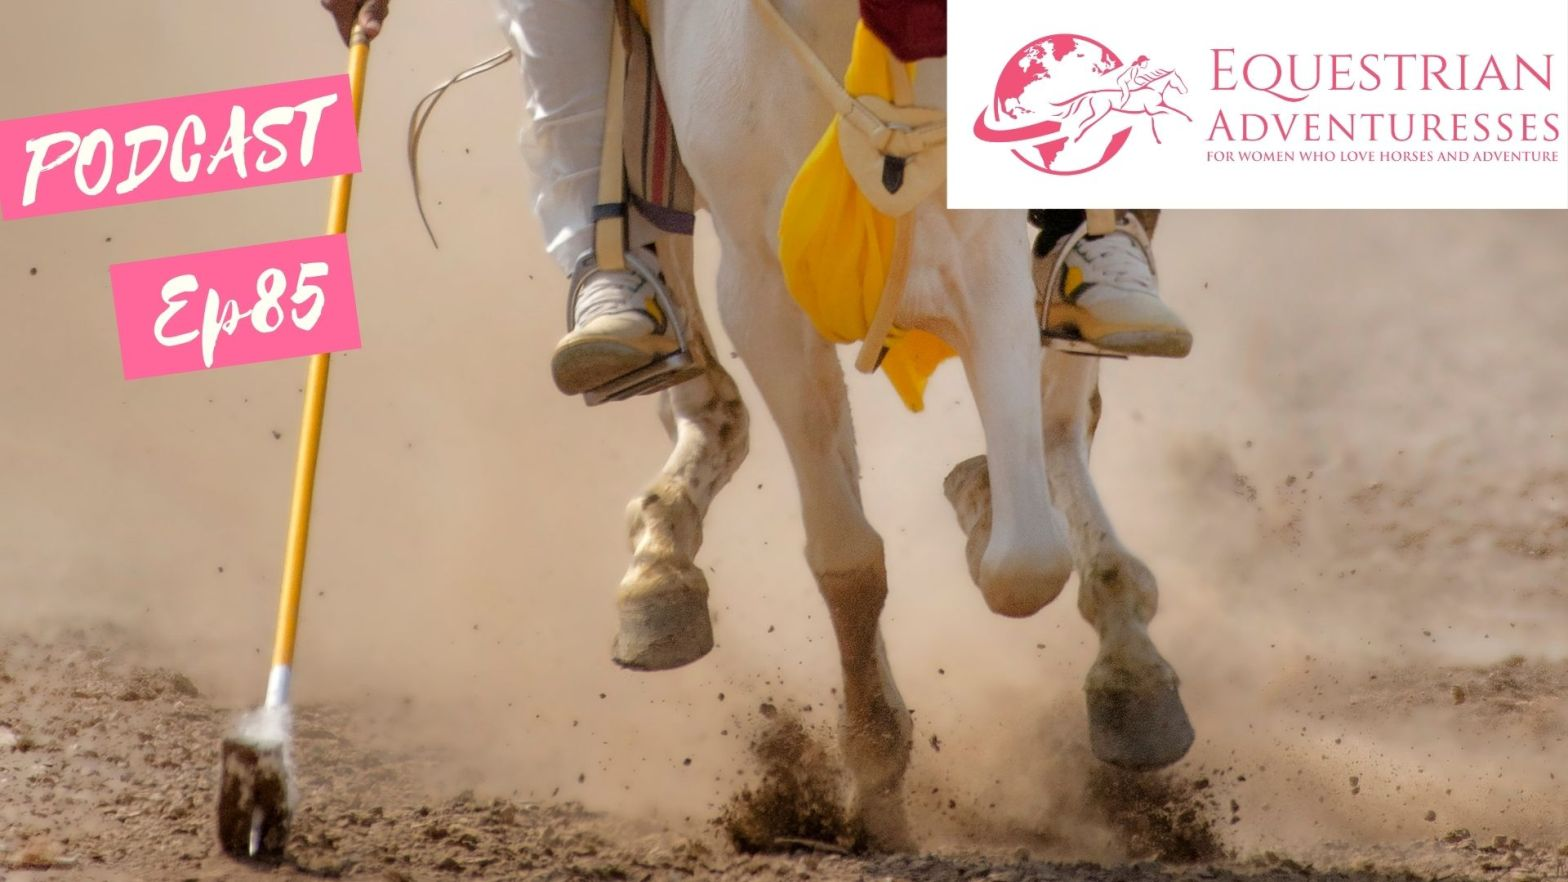 Equestrian Adventuresses Travel and Horse Podcast Ep 85 - Warrior Girl